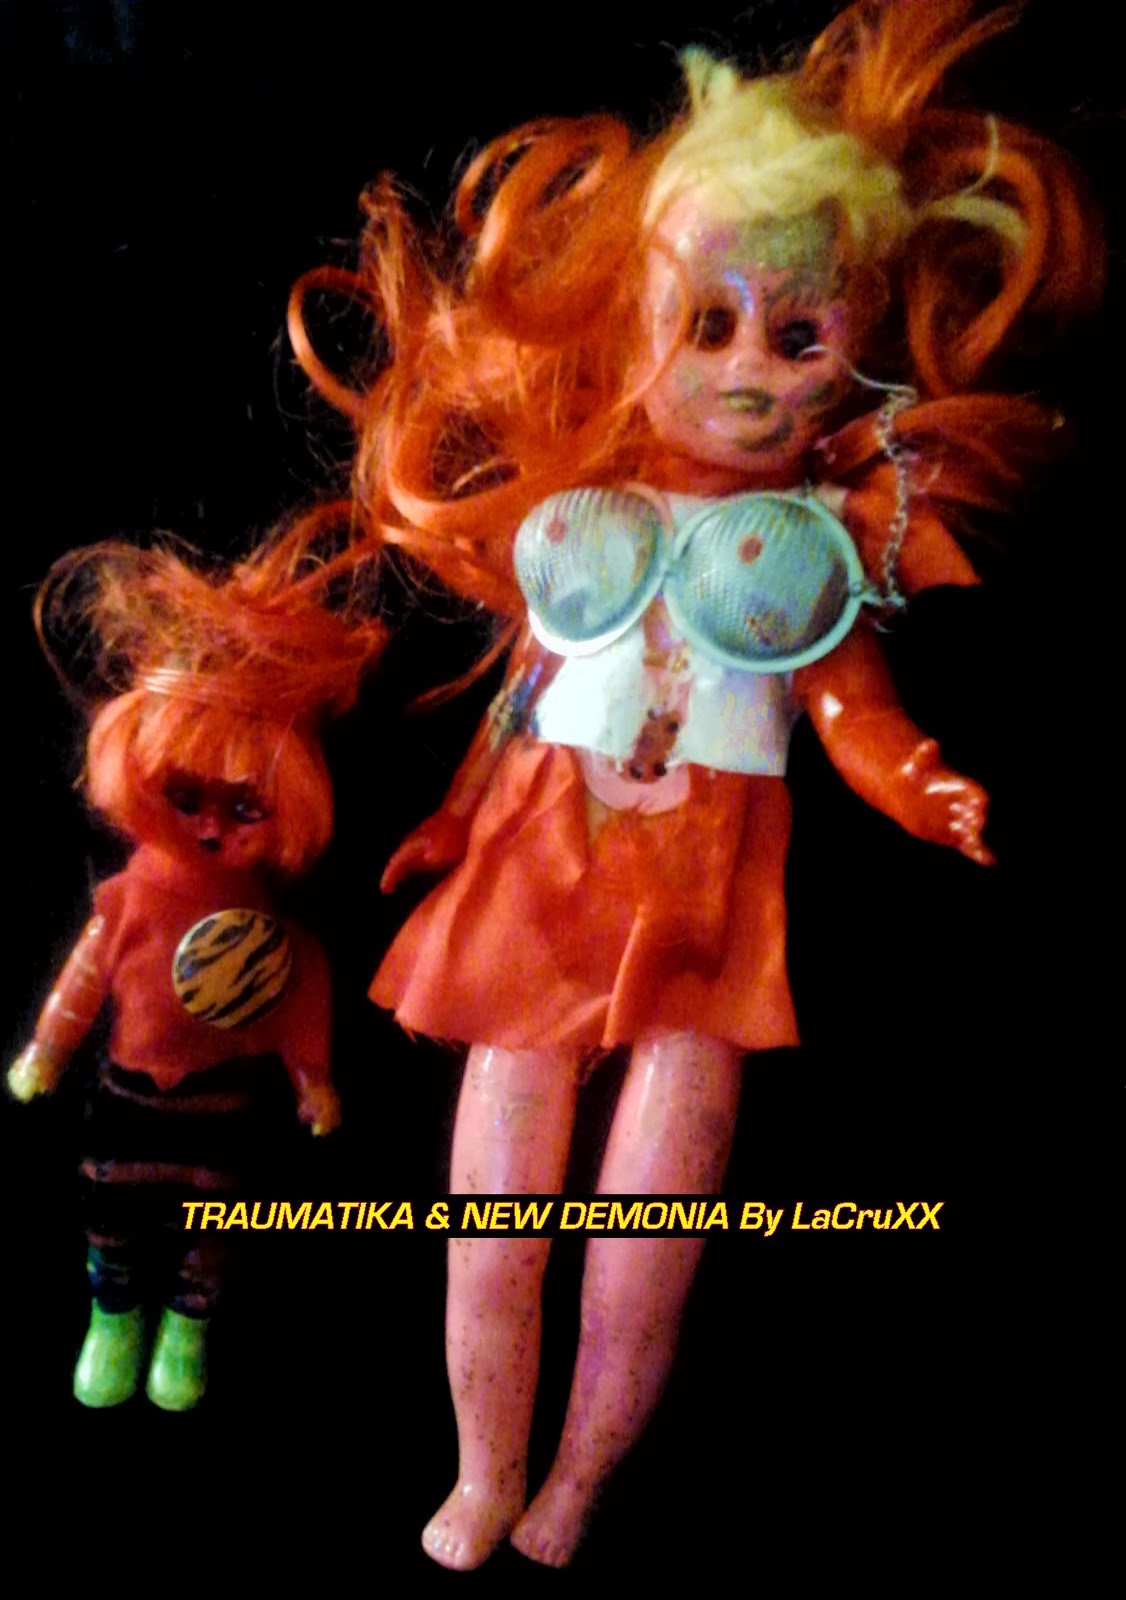 TRAUMATIKA & NEW DEMONIA